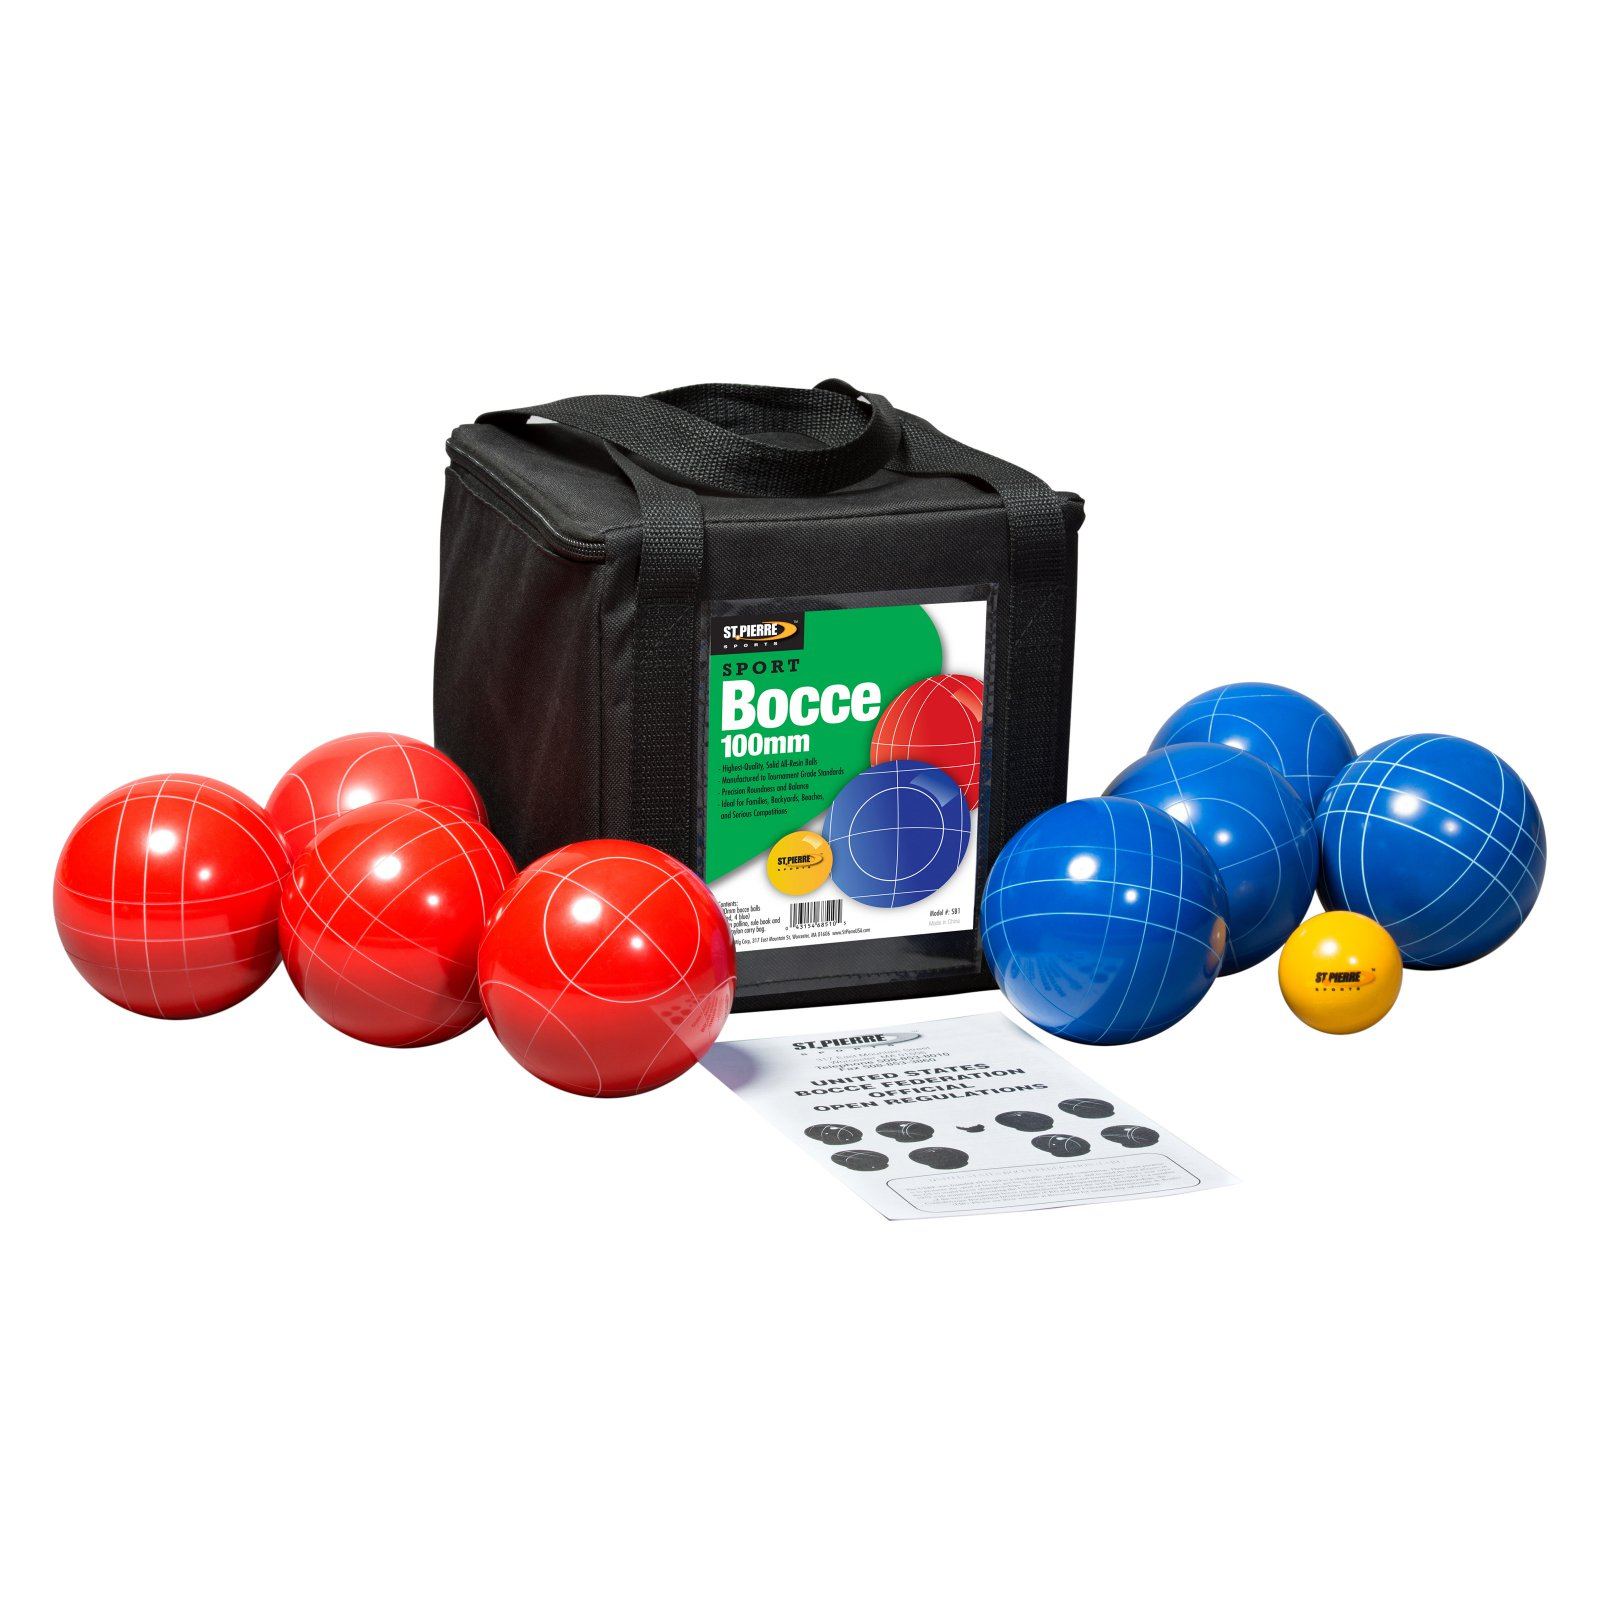 St. Pierre Sport Bocce Set with Nylon Bag